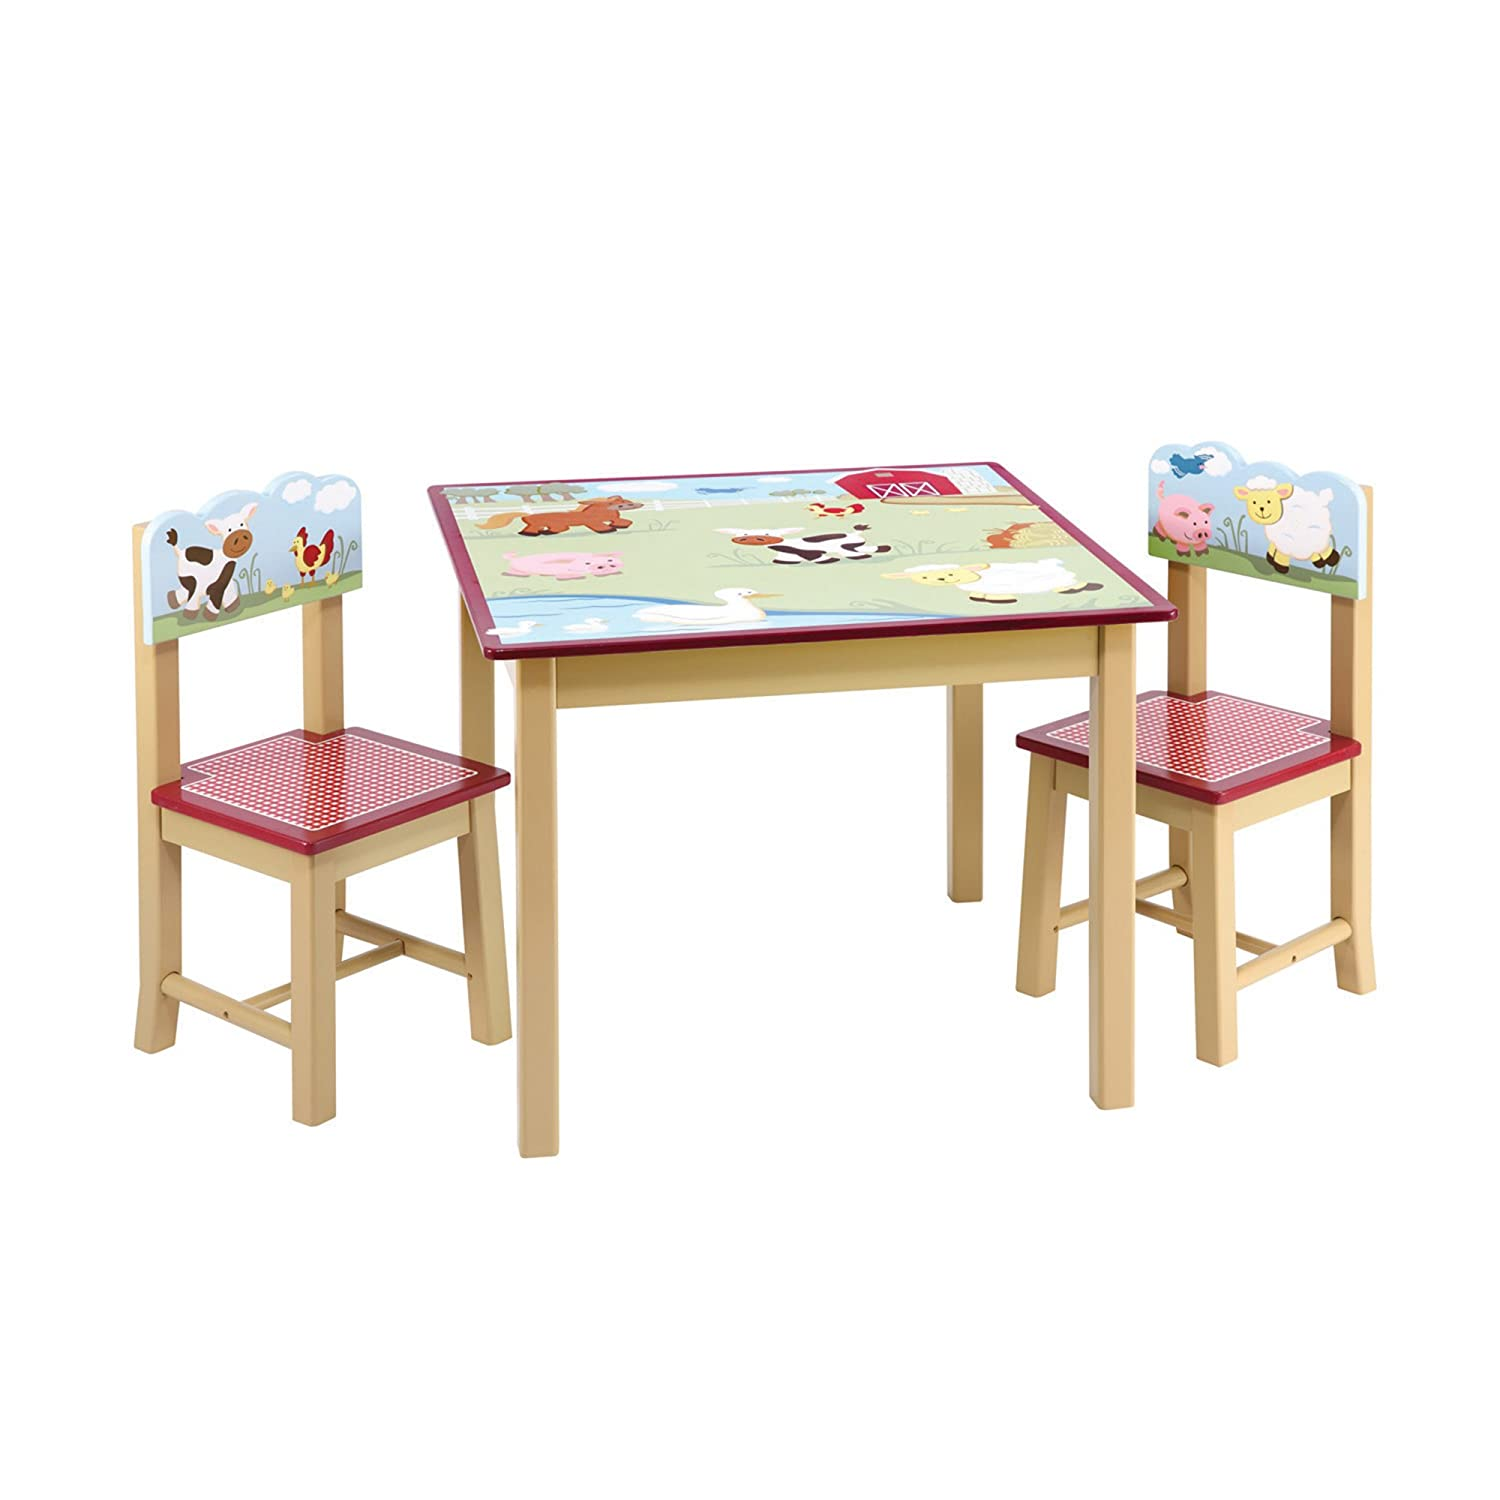 sc 1 st  Amazon.com & Amazon.com: Farm Friends Table and Chair Set: Baby